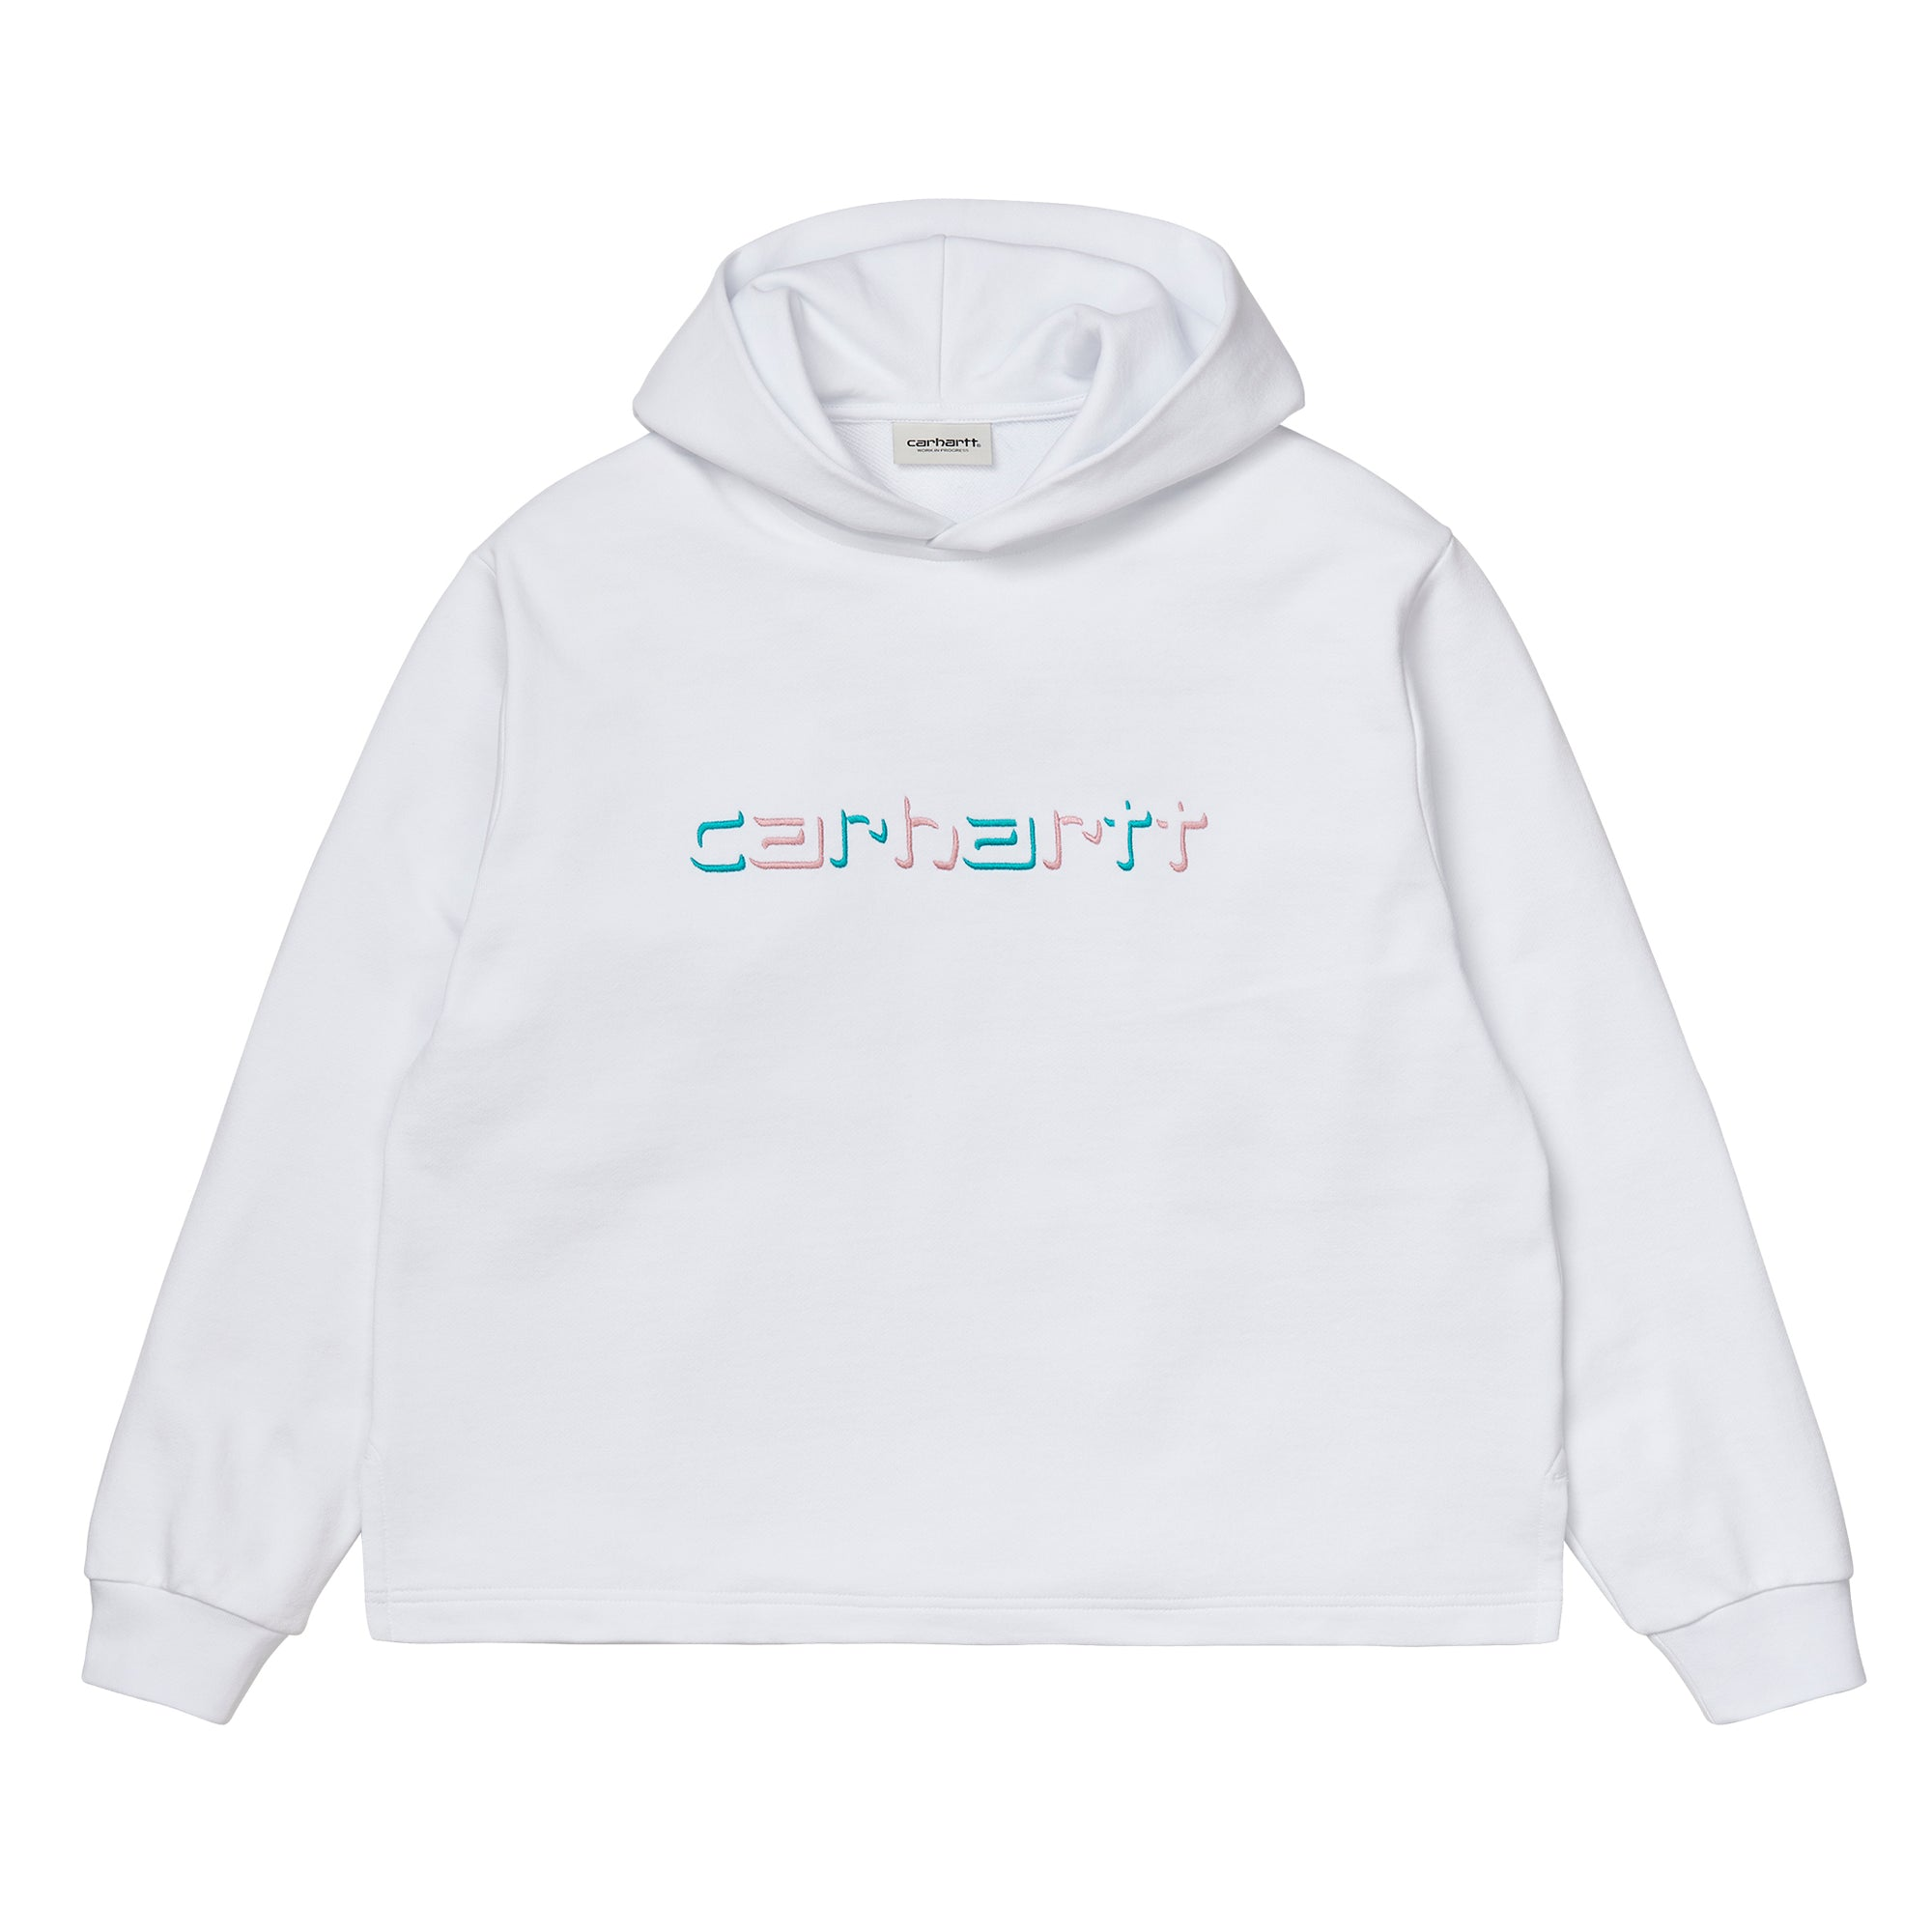 Carhartt WIP Womens Hooded Shadow Script Sweat: White - The Union Project